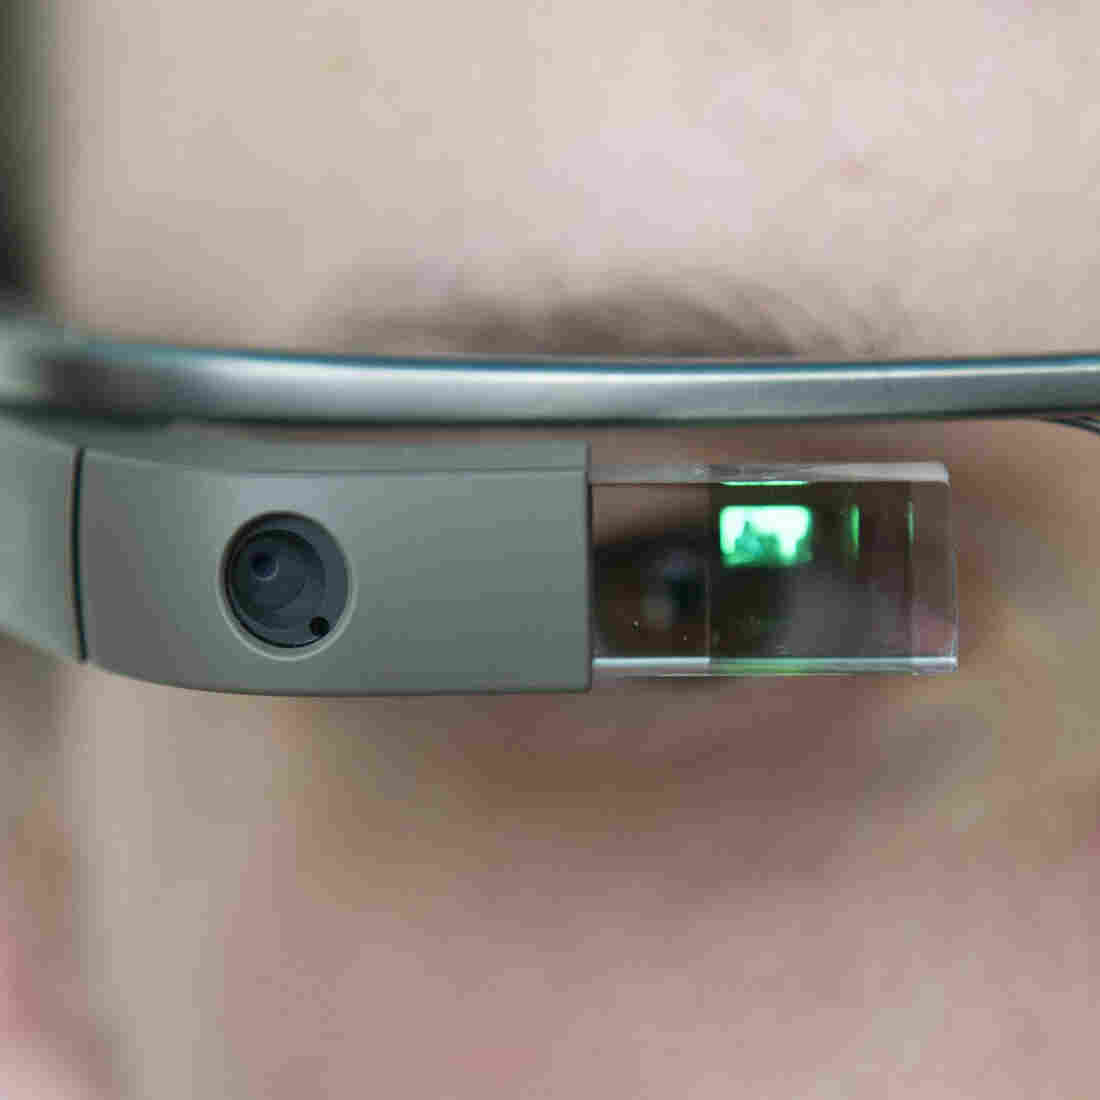 Google Fights Glass Backlash Before It Even Hits The Street